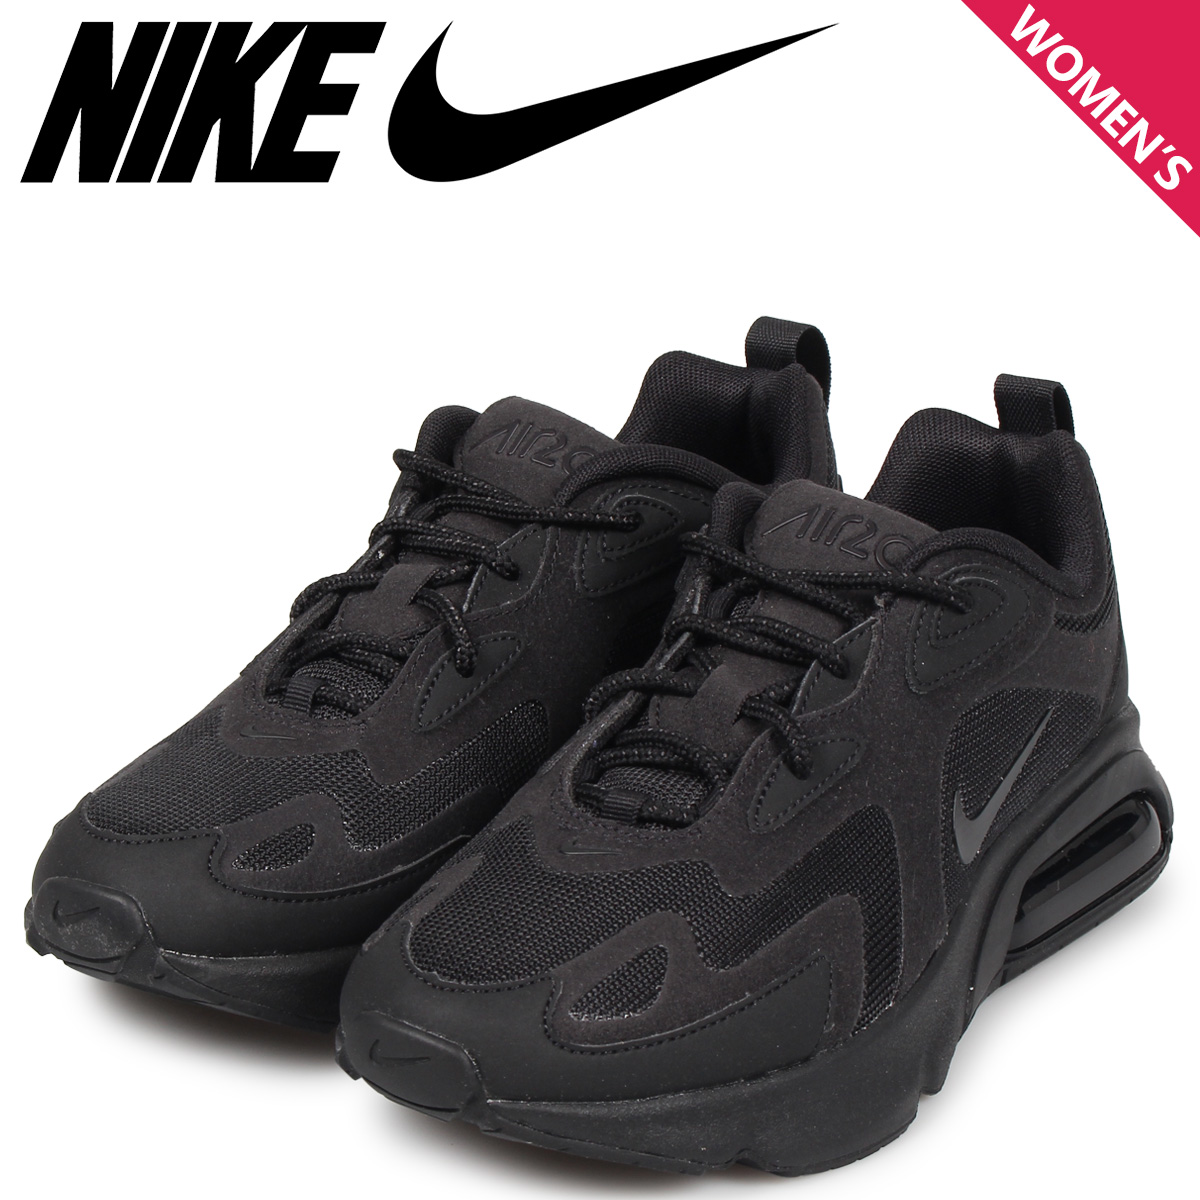 NIKE Kie Ney AMAX 200 sneakers Lady's WMNS AIR MAX 200 black black AT6175 003